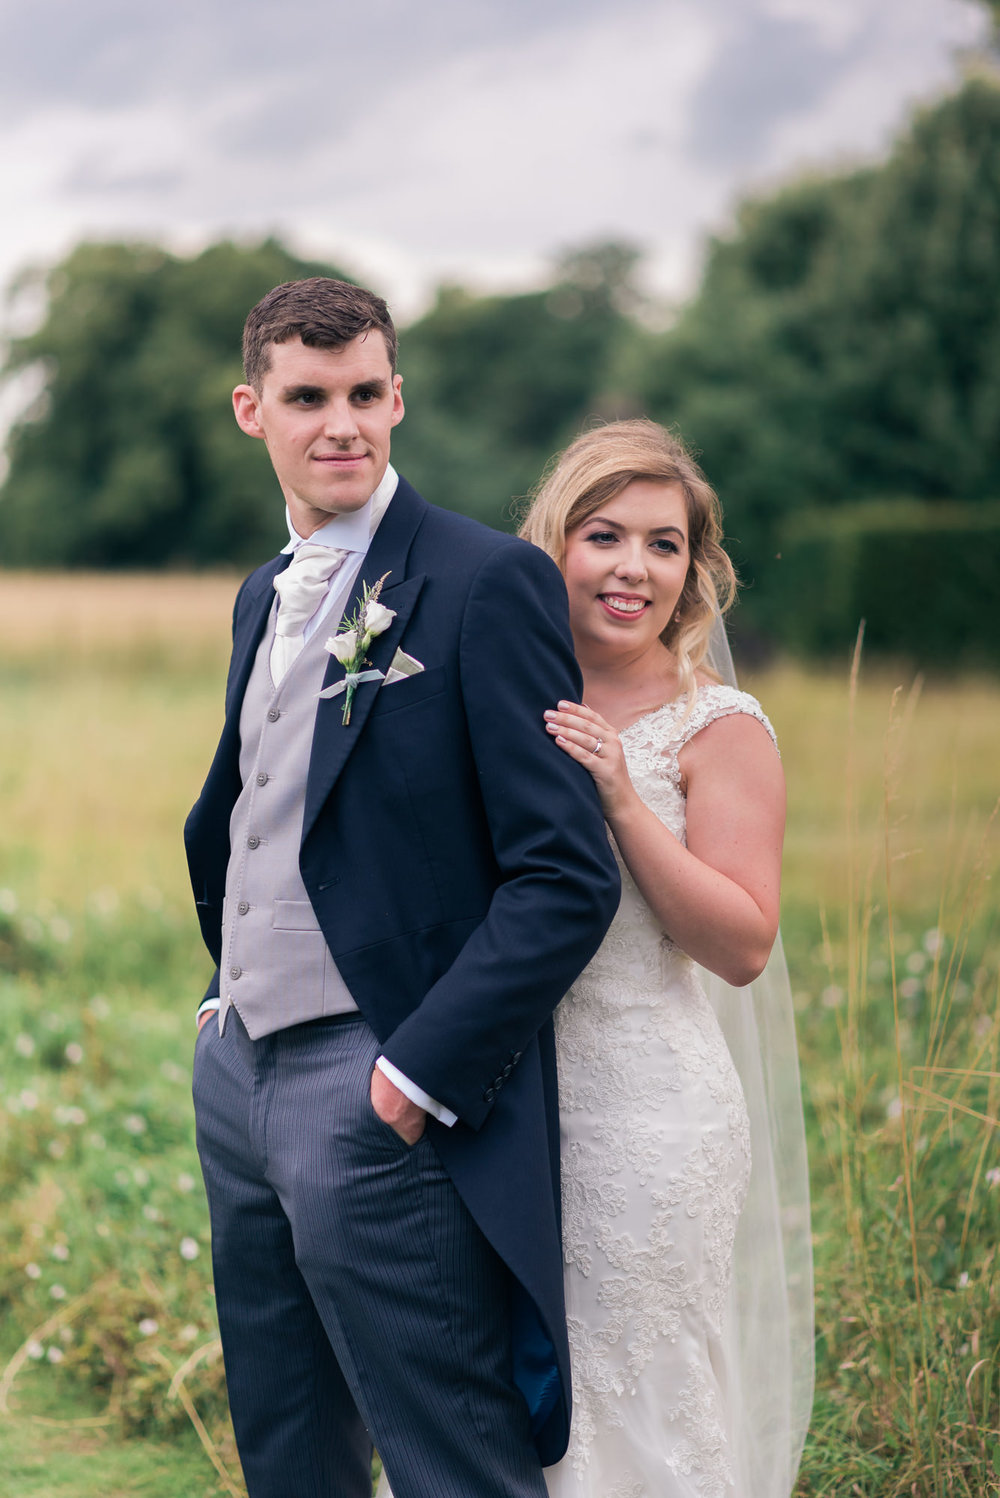 bride and groom on their wedding day at Narborough Hall Gardens in Norfolk